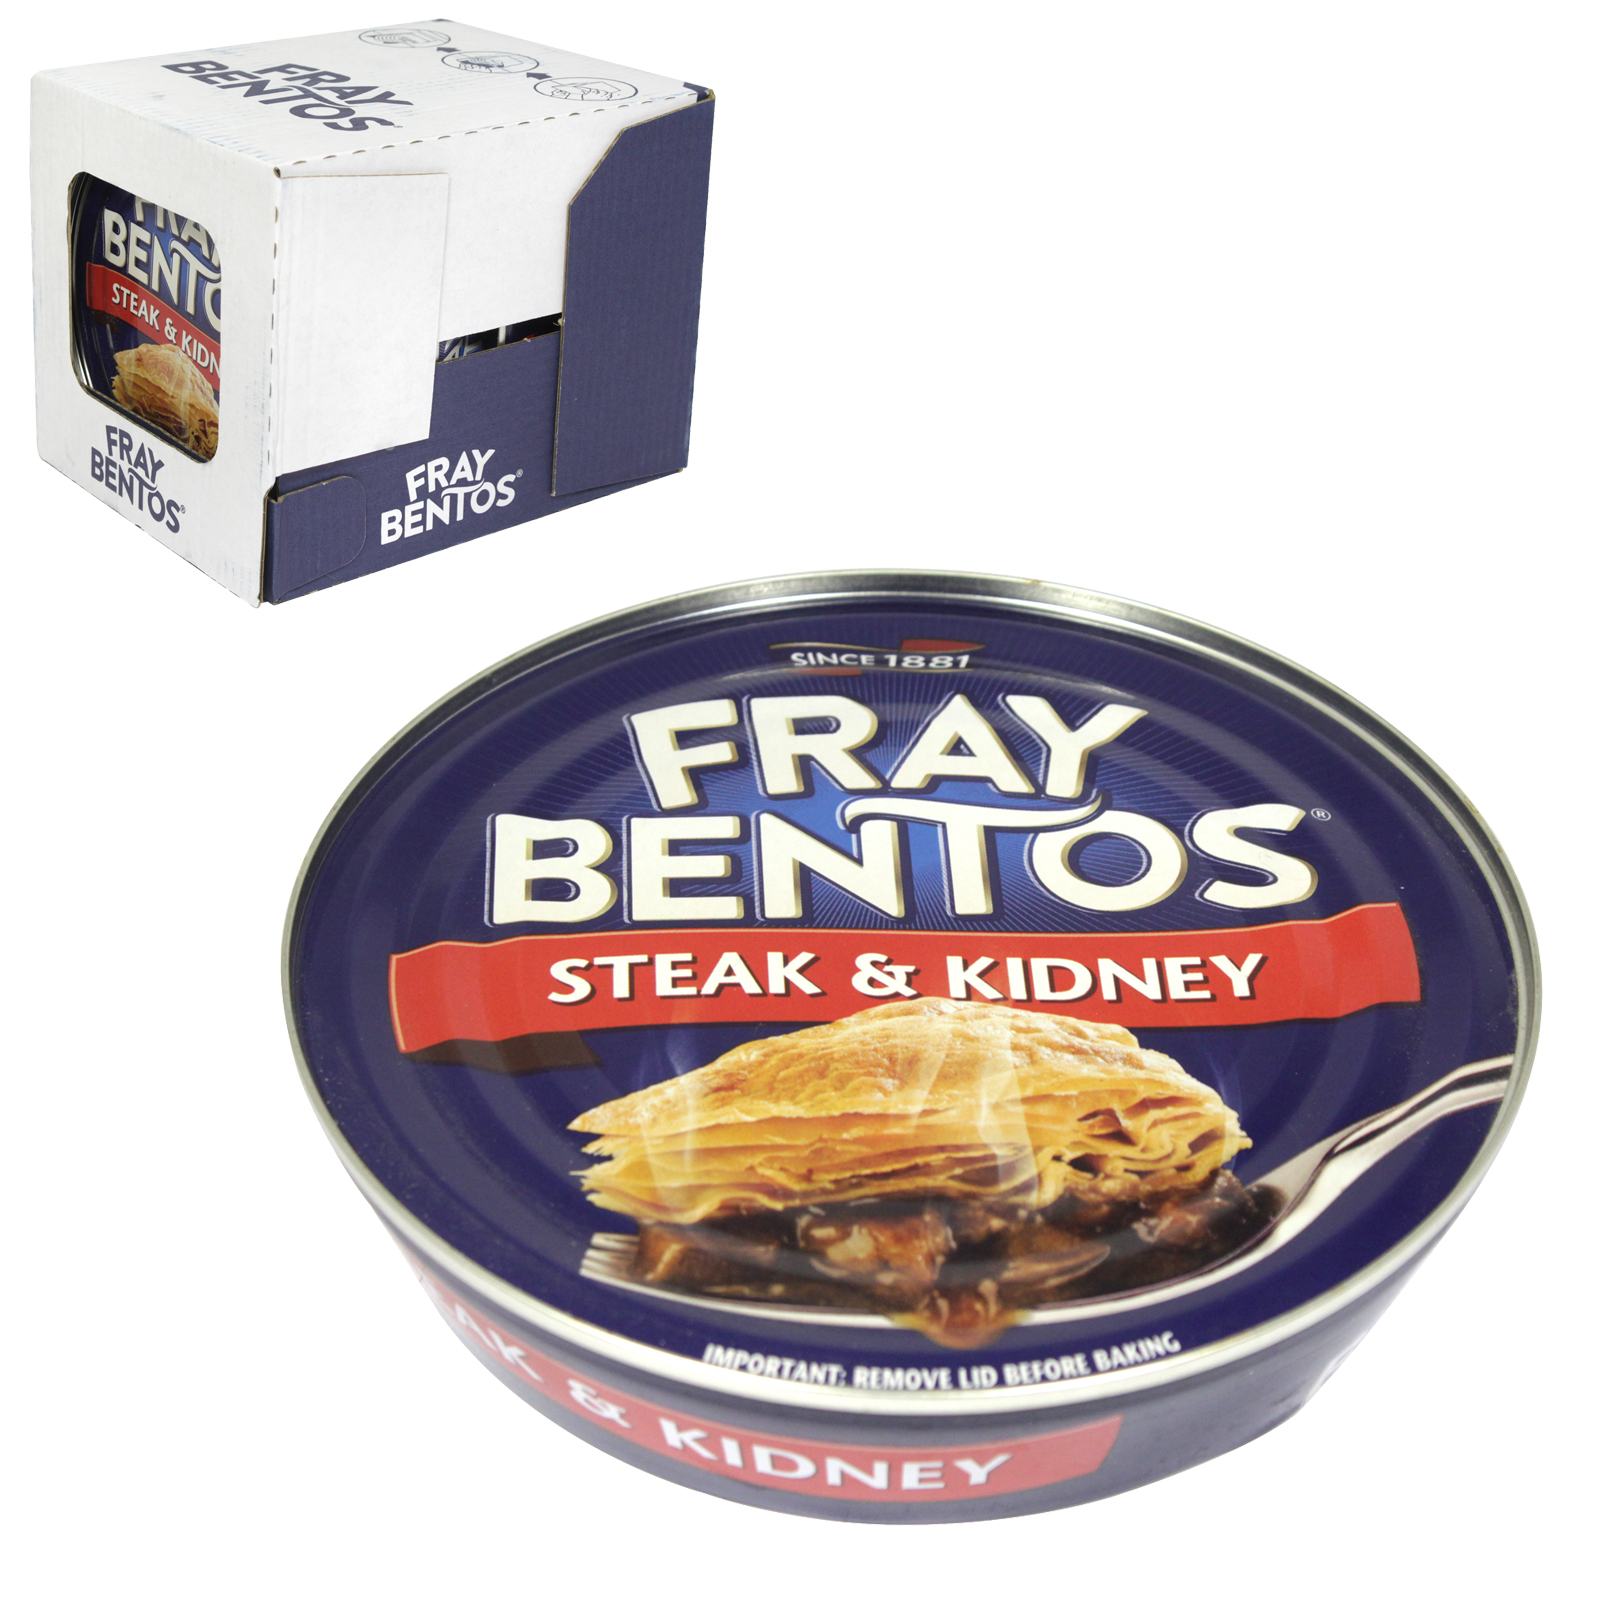 FRAY BENTOS PIE 425G STEAK & KIDNEY X6